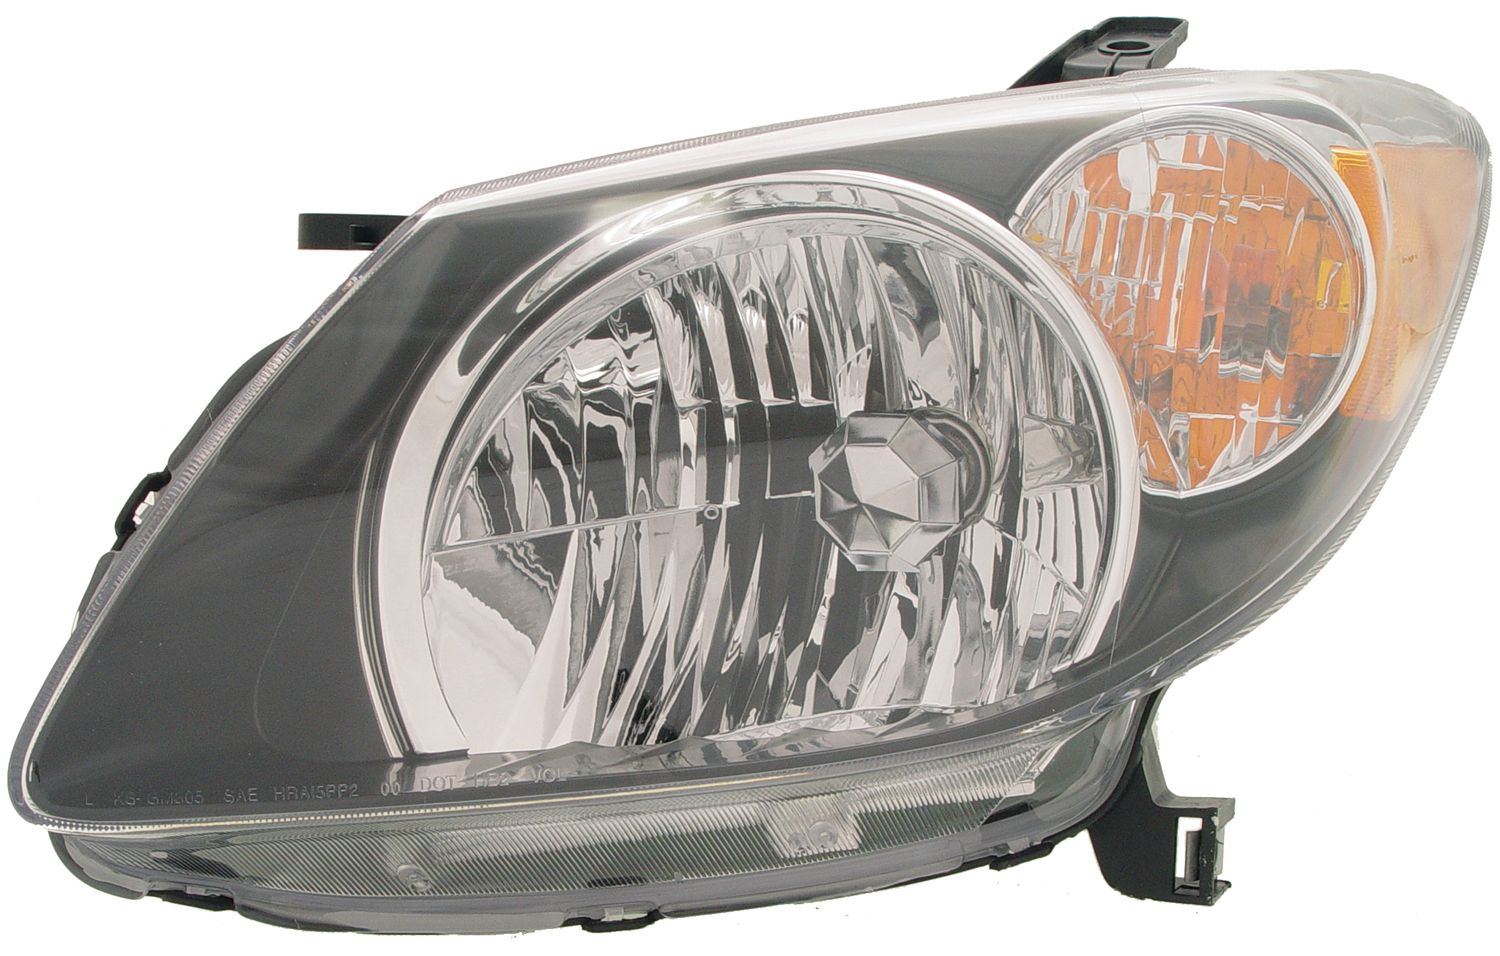 2004 Pontiac Vibe Headlight Embly Rb 1591047